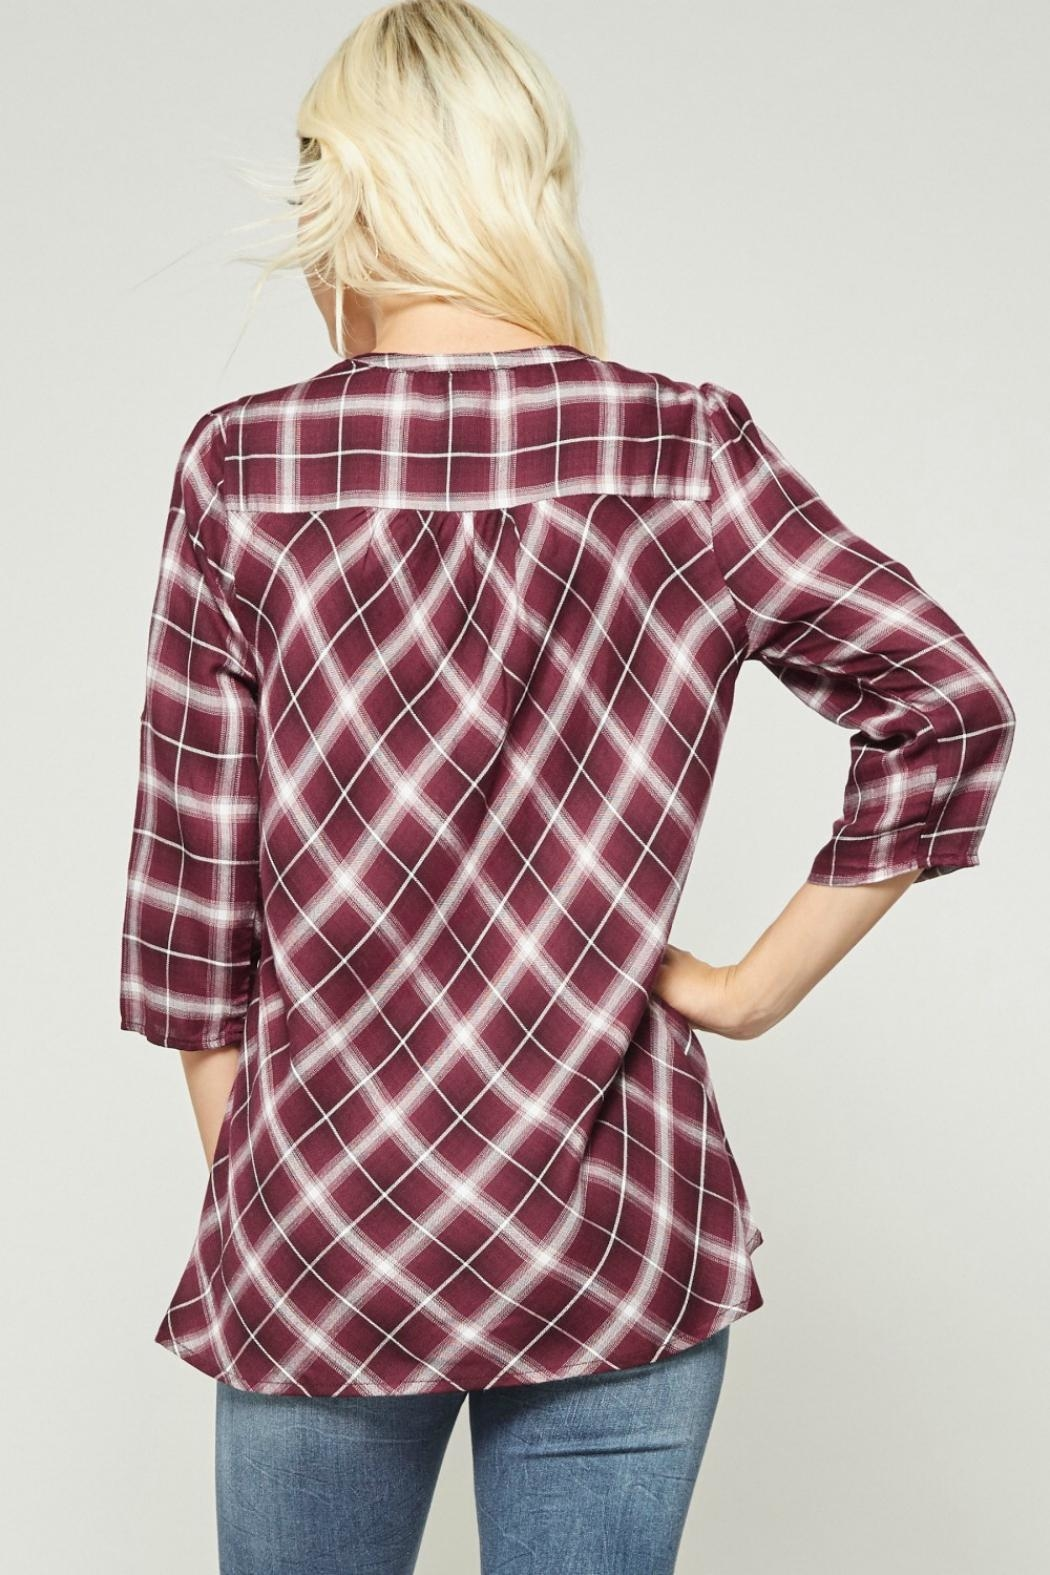 Andree by Unit Embroidered Plaid Button-Down - Front Full Image